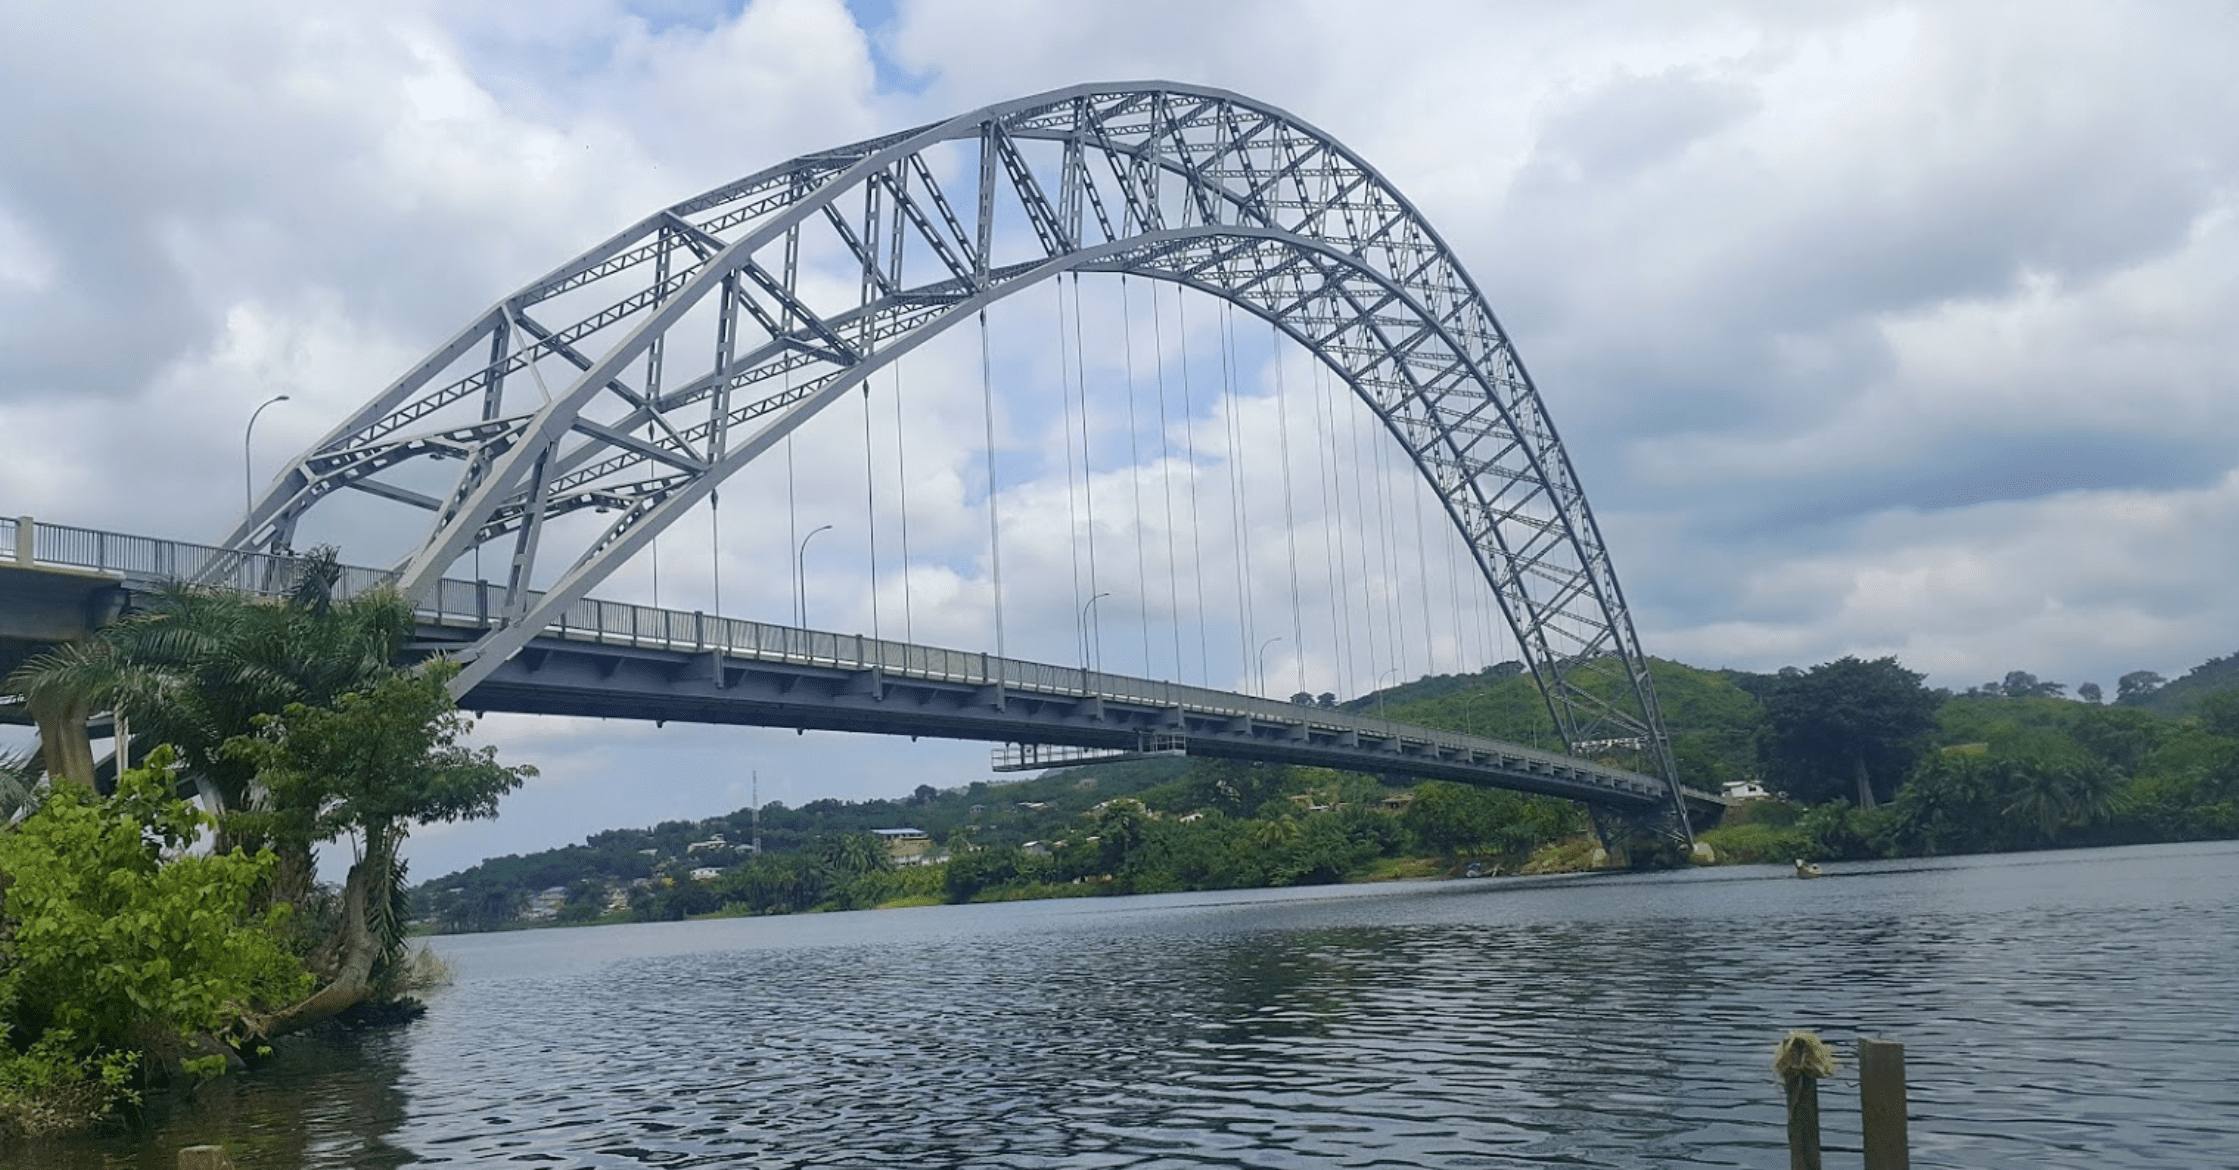 Things to Do in Akosombo